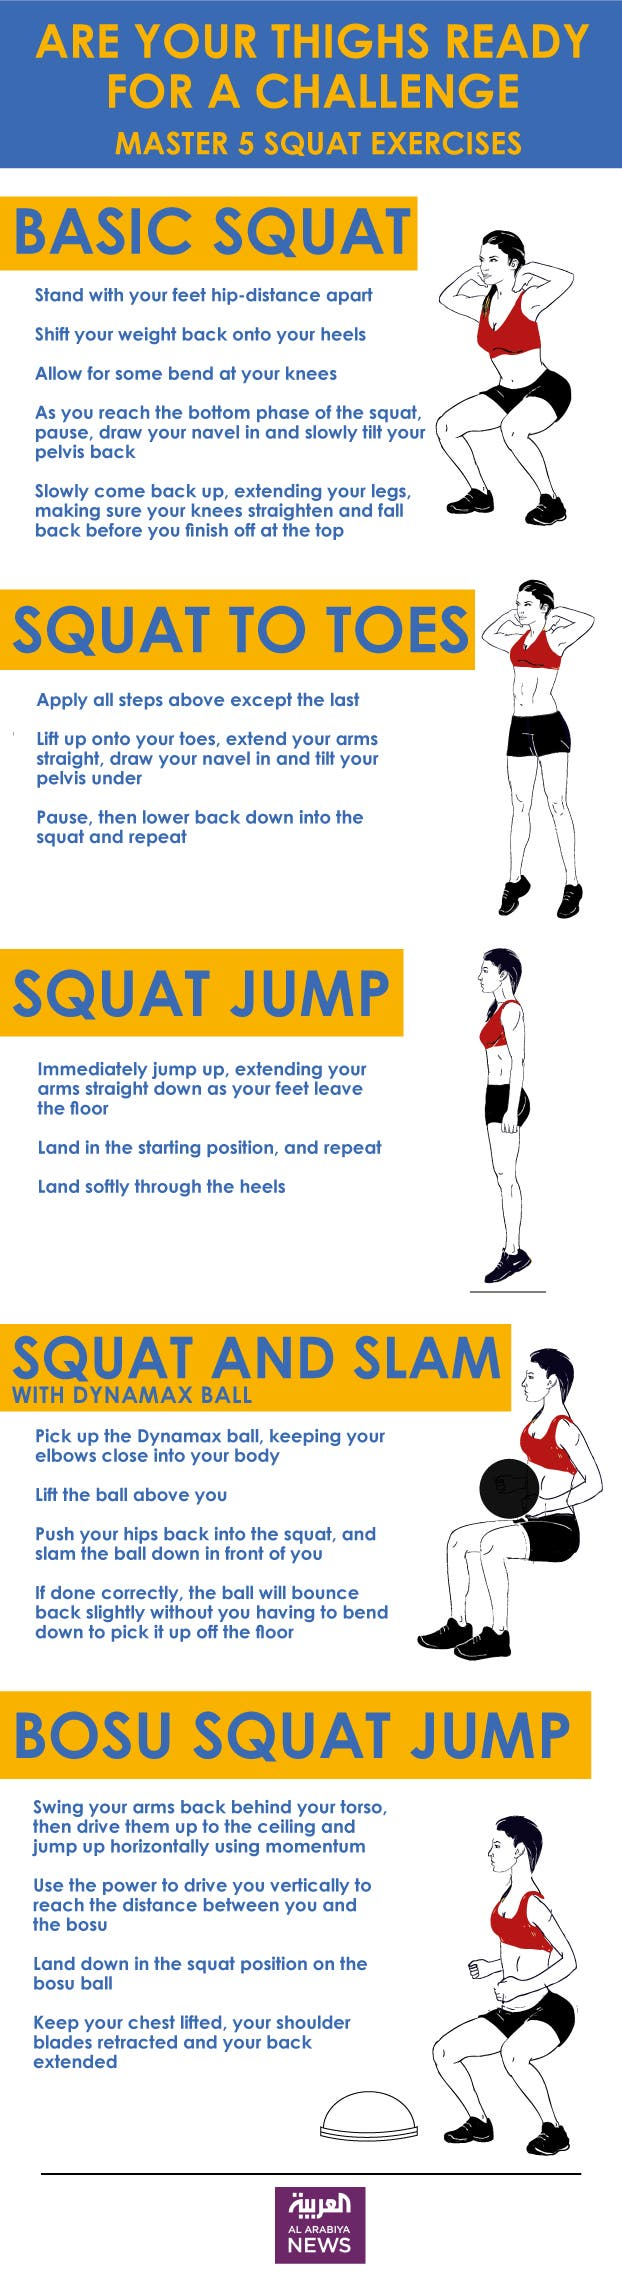 Infographic: Are your thighs ready for a challenge? Master 5 squat exercises